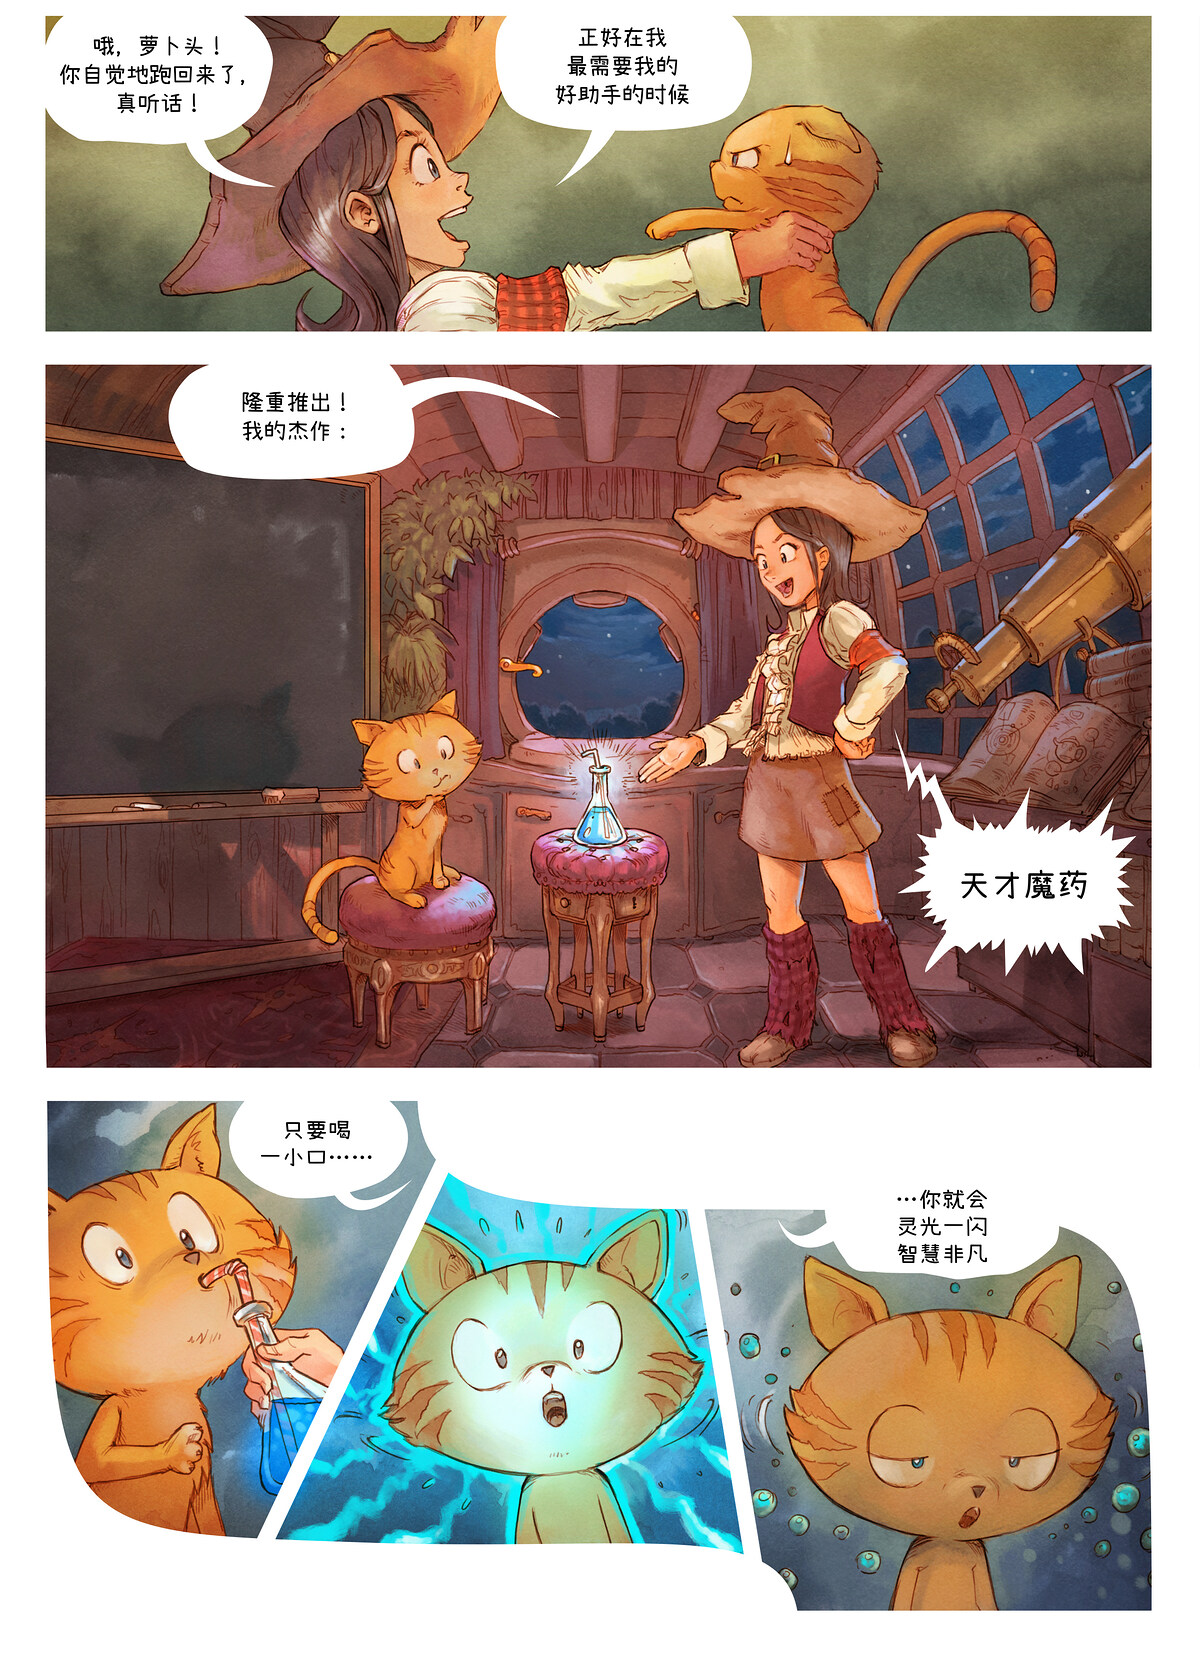 A webcomic page of Pepper&Carrot, 漫画全集 4 [cn], 页面 3